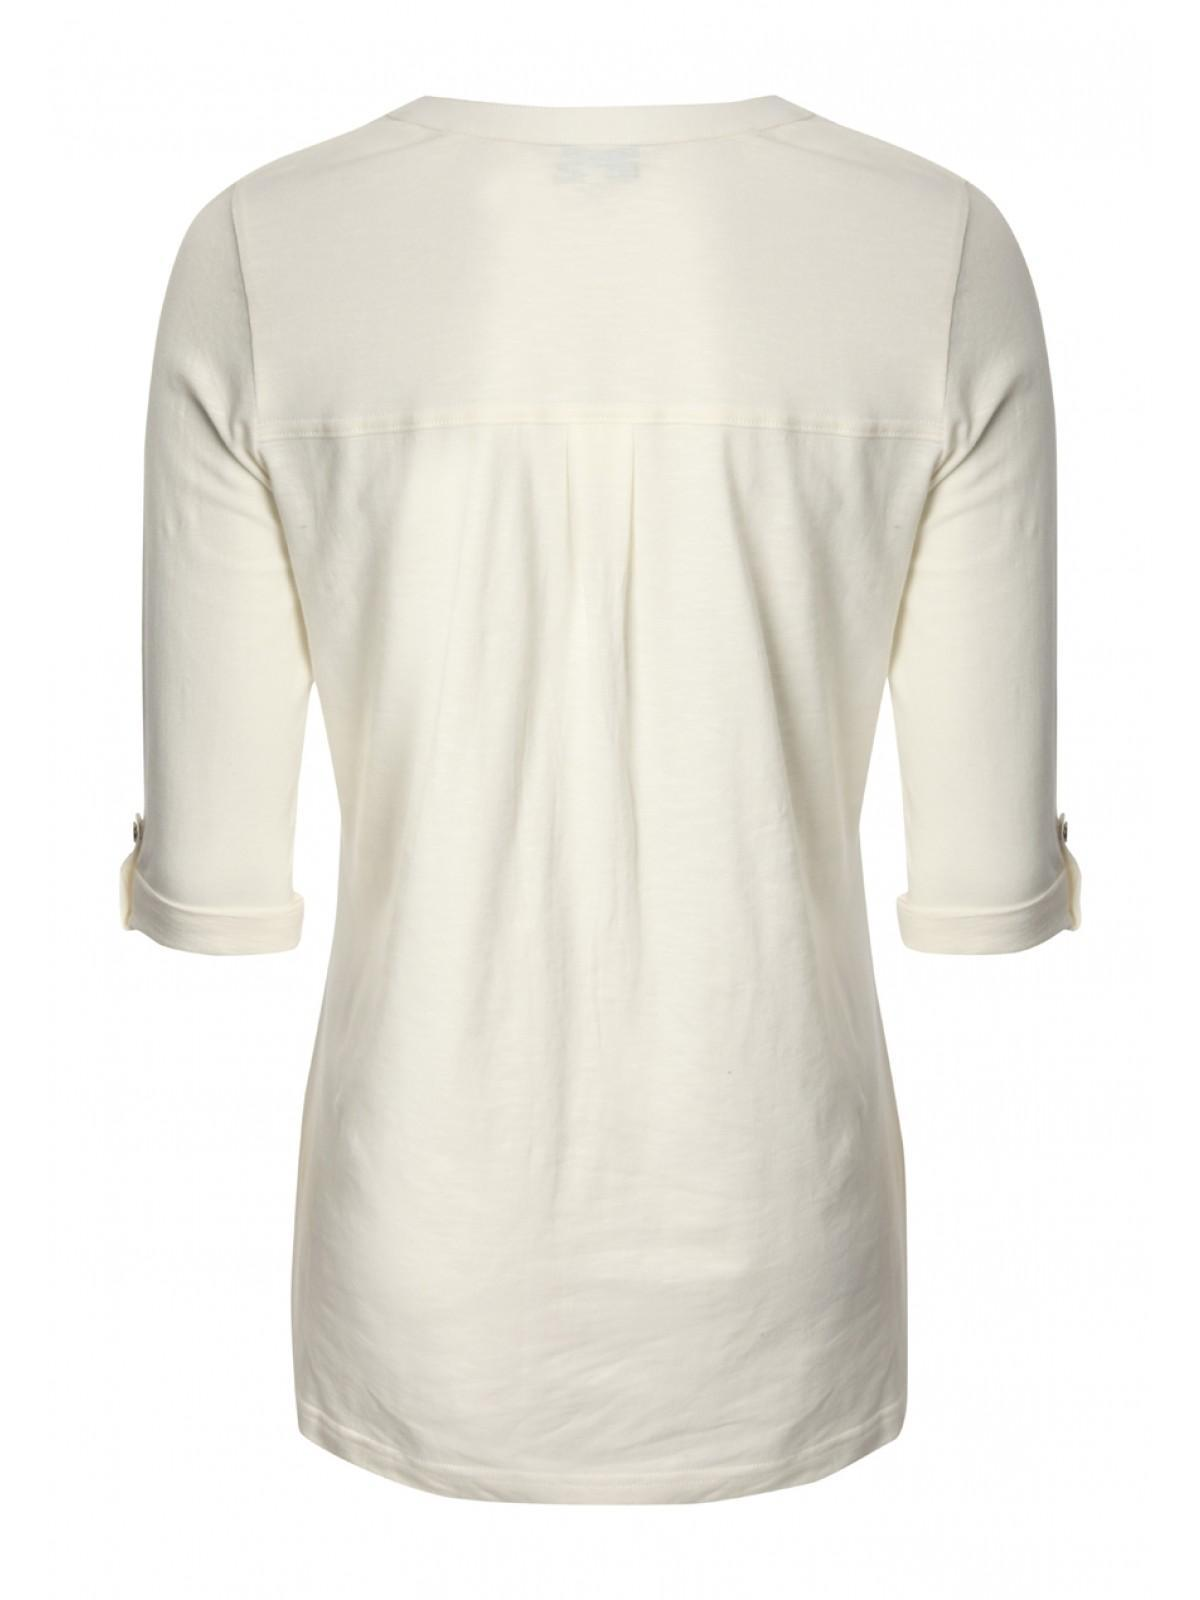 Womens Cream Shirt | Artee Shirt